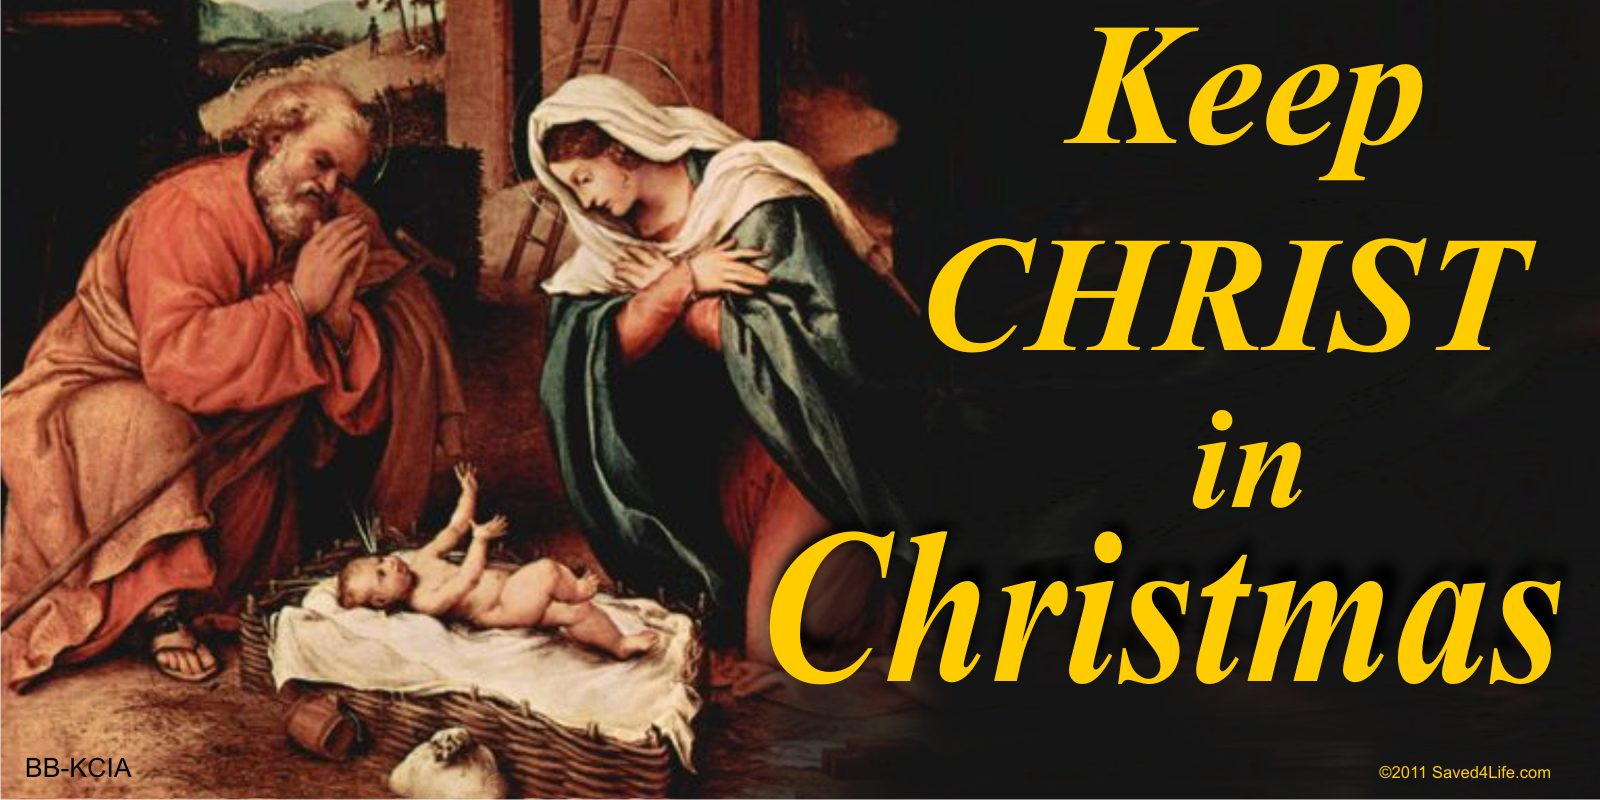 Keep Christ In Christmas (Nativity) 1.25x2 Keychain